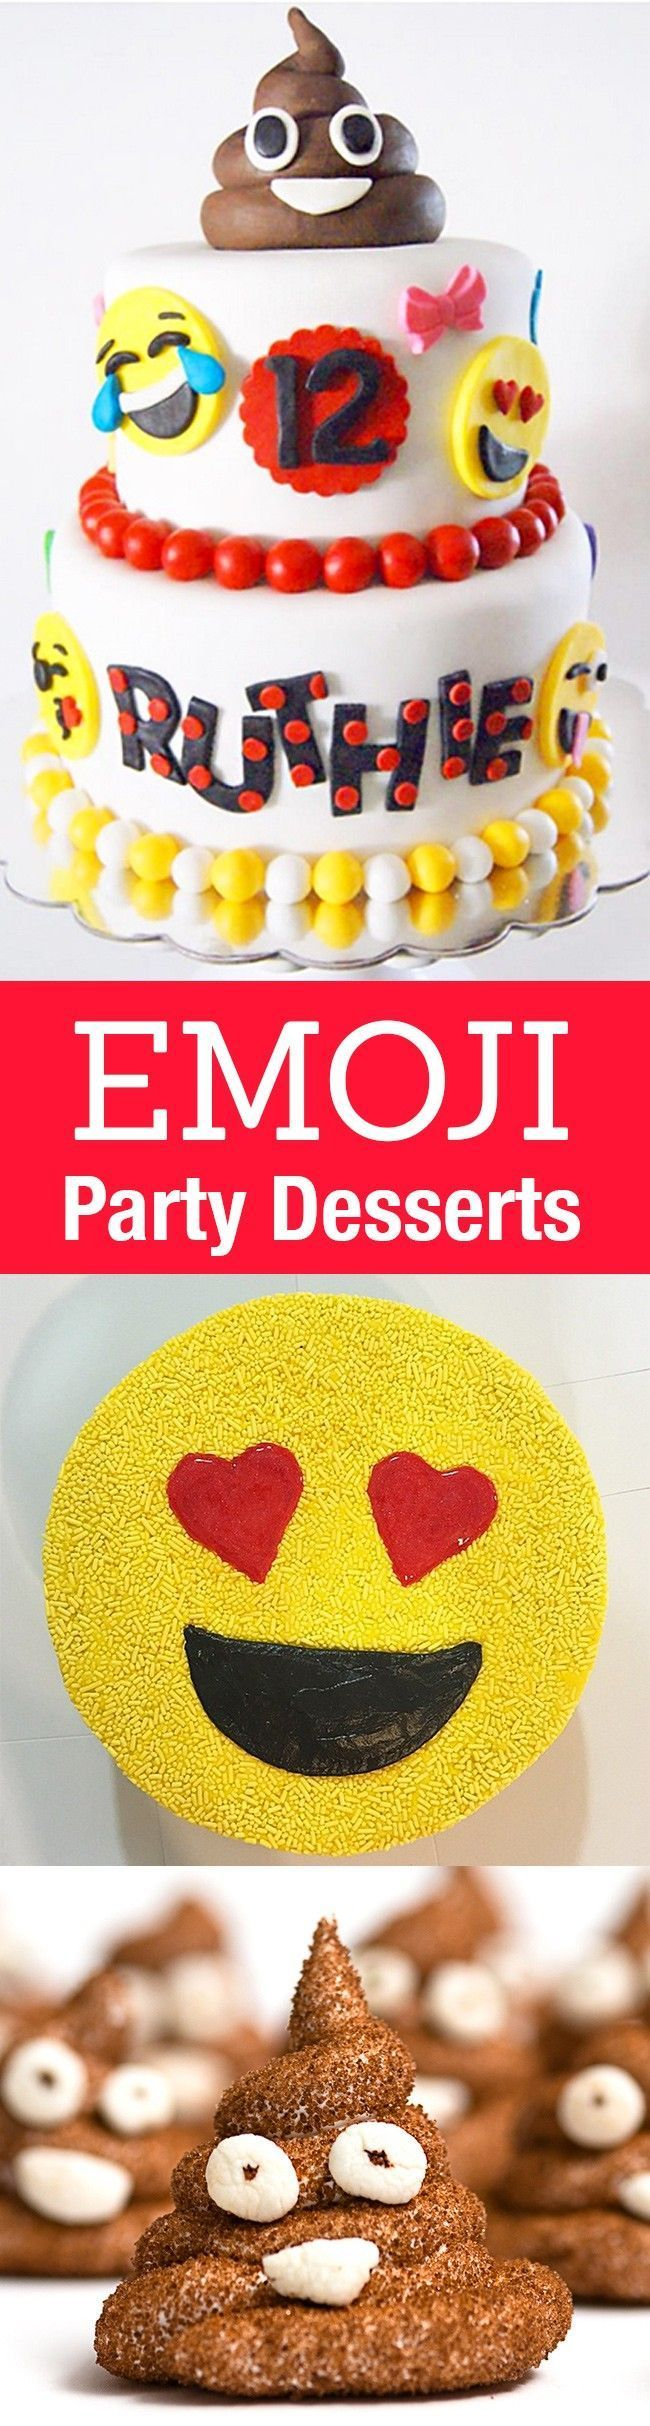 Emoji cake ideas and dessert inspiration for an Emoji Party. From birthday and graduation parties to school events, an emoji party theme is fun for all! LivingLocurto.com